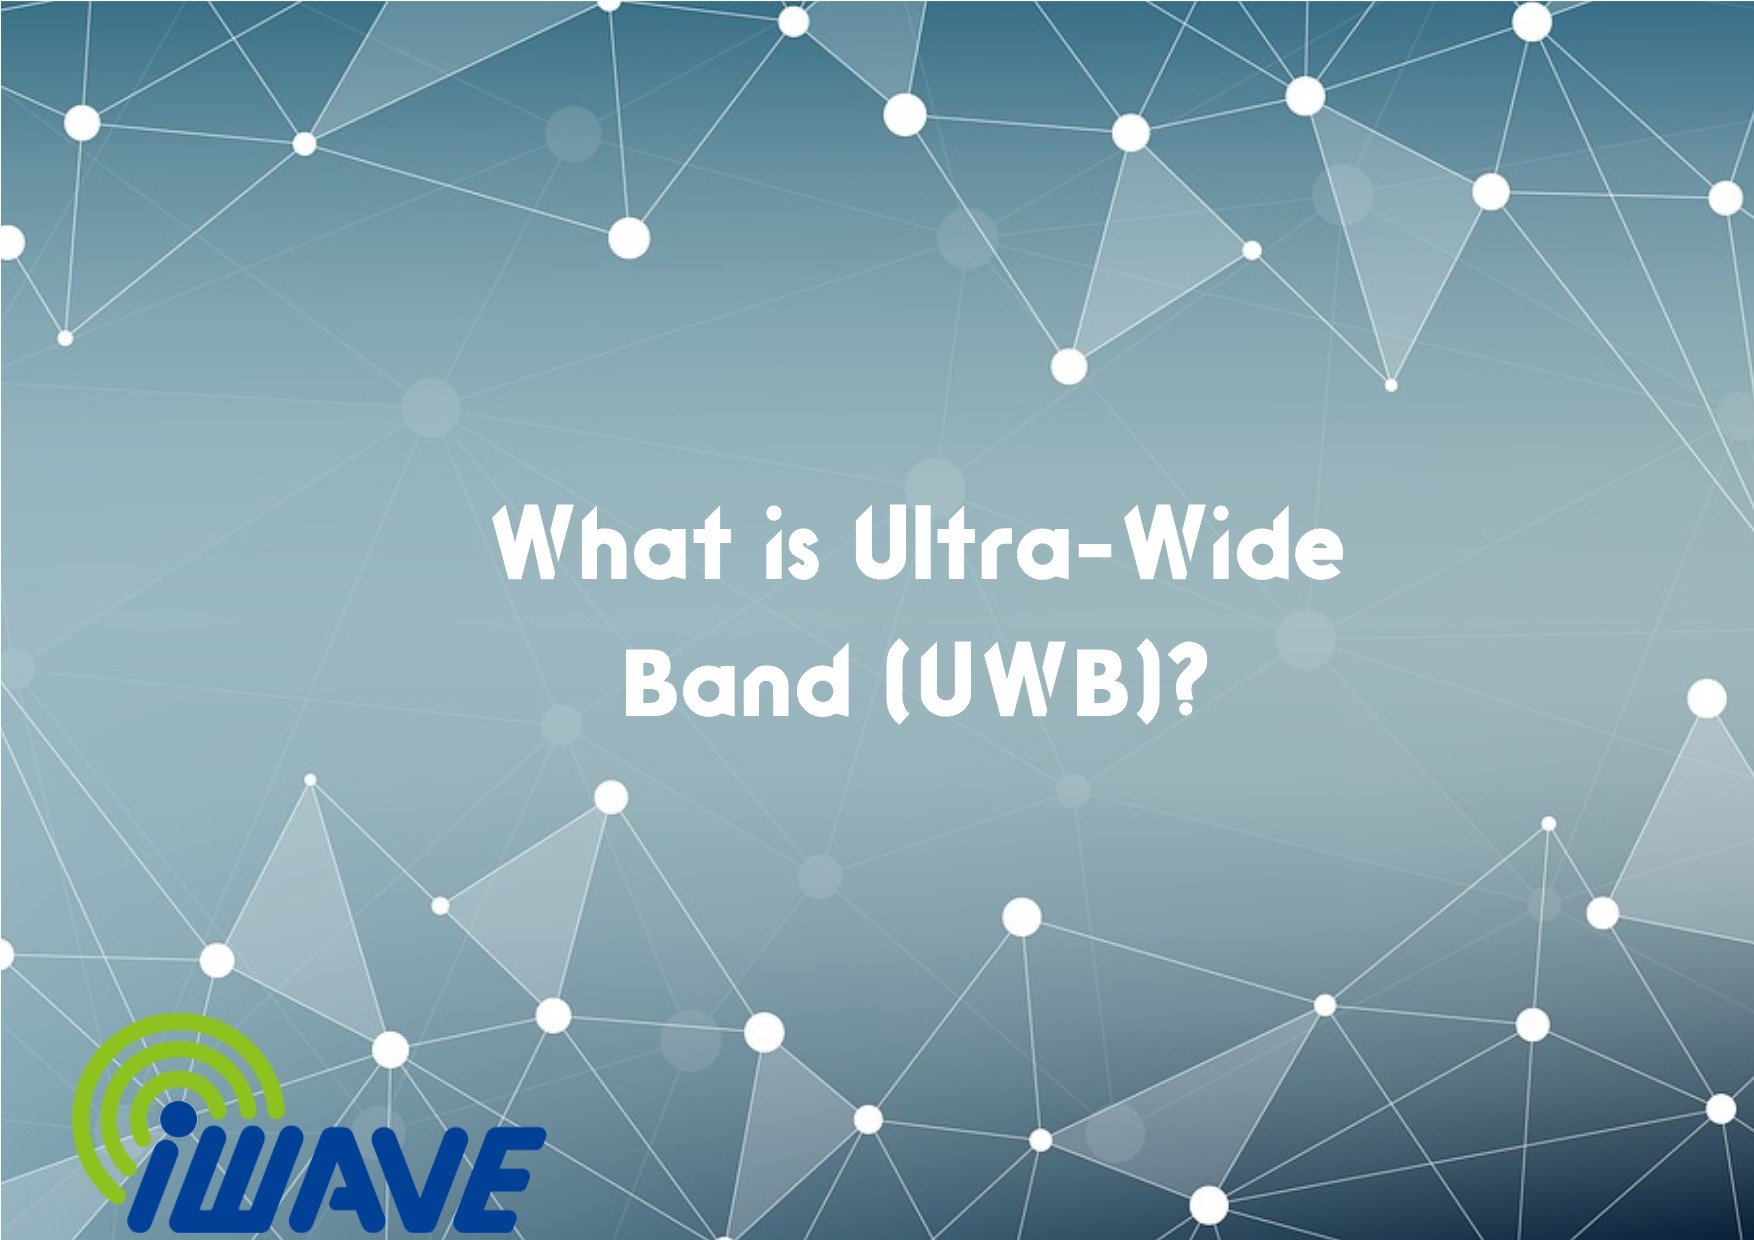 poster with What is Ultra-Wide Band (UWB)? title